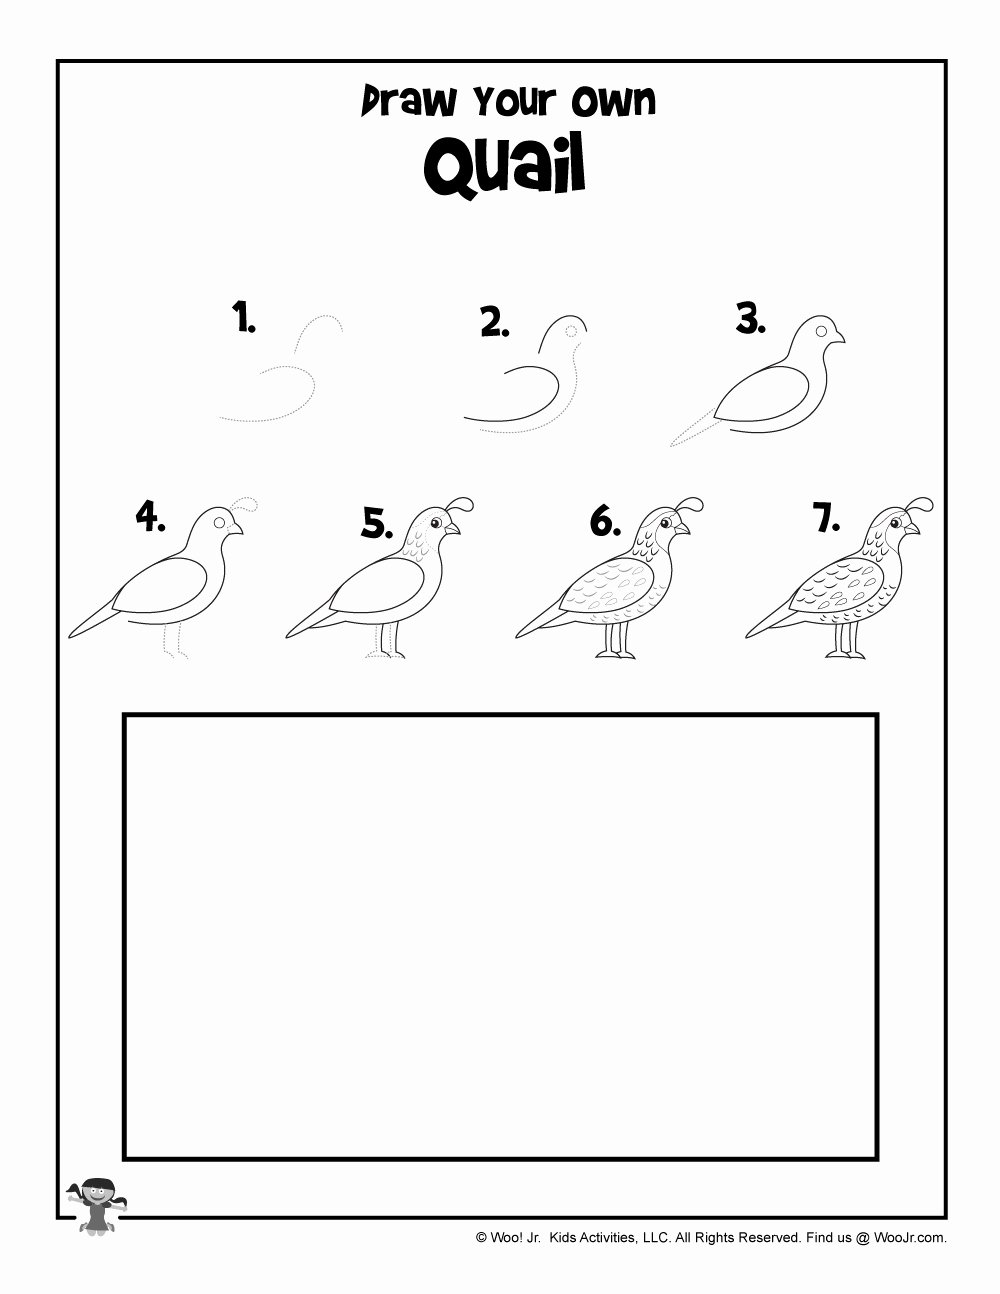 Quail Worksheets for Preschoolers Free Quail Step by Step Drawing Tutorial